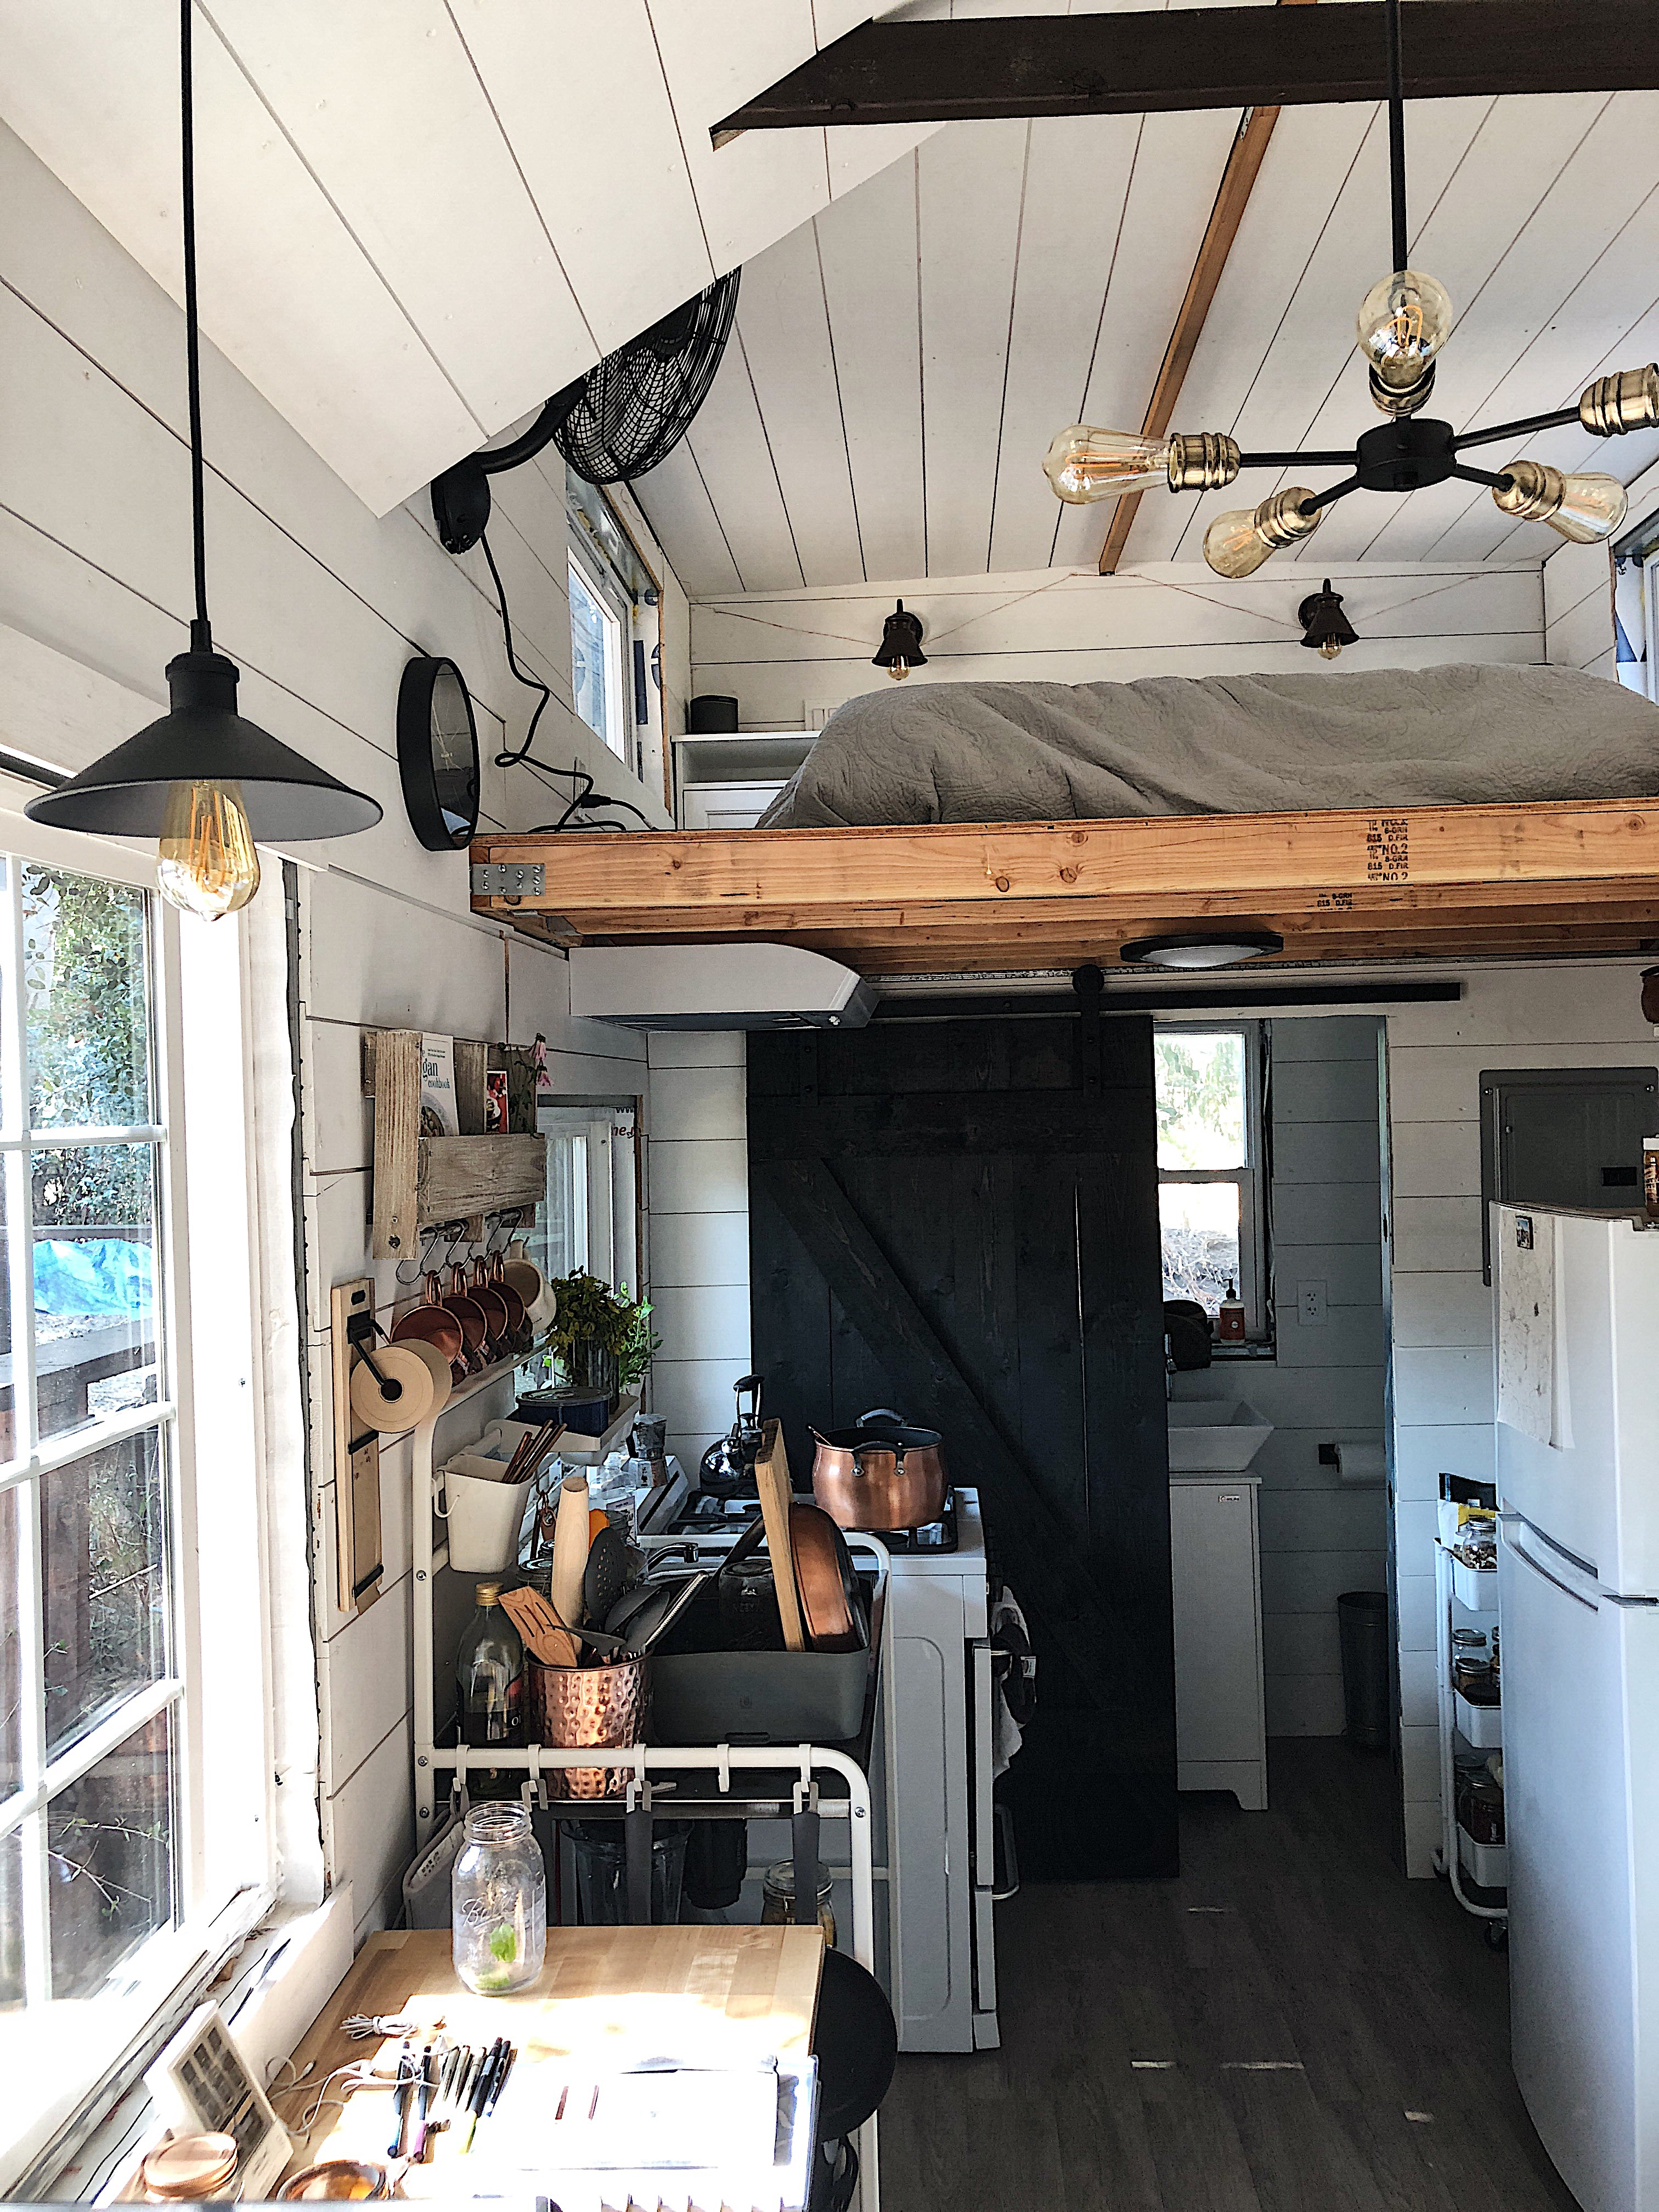 300 Square Foot Tiny House Video Tour Apartment Therapy